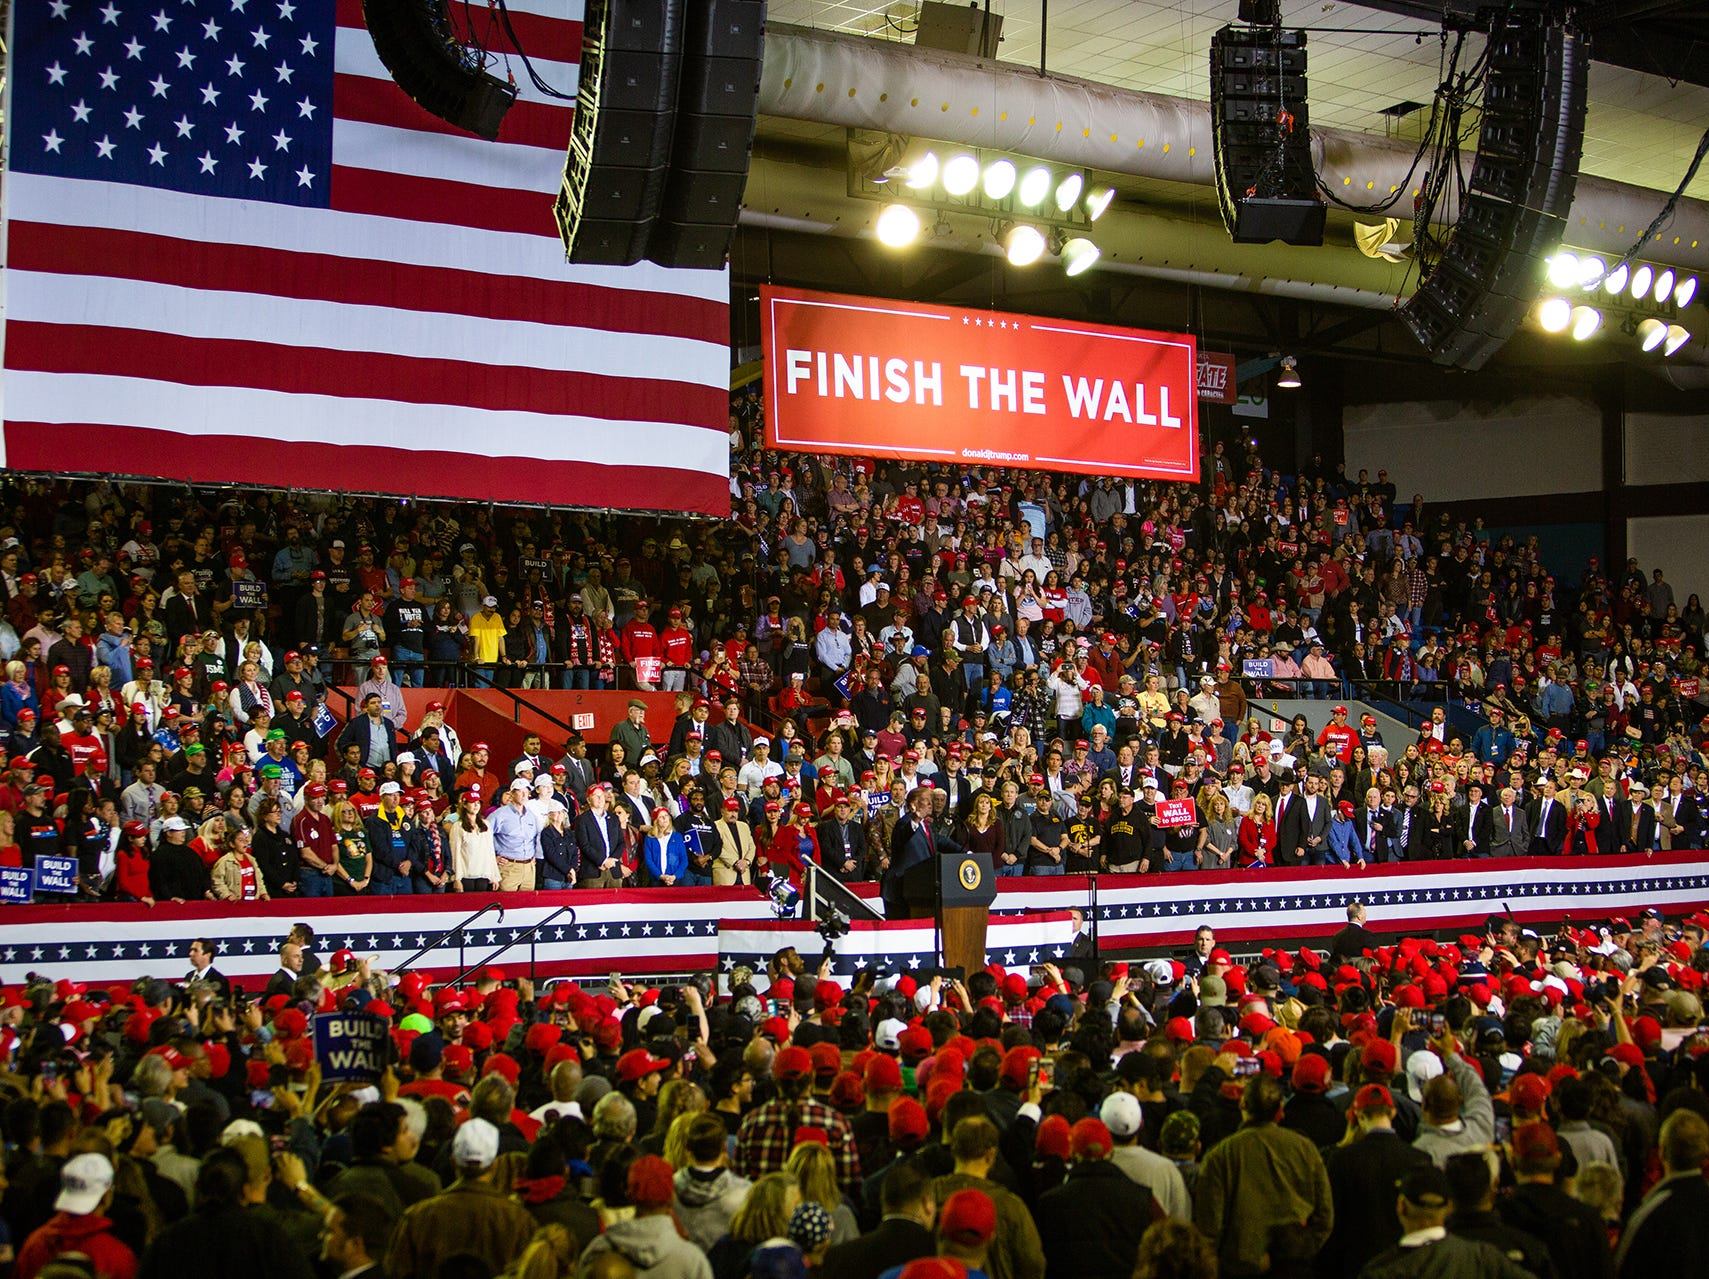 President Donald Trump held rally Monday at the El Paso County Coliseum. Trump spoke at length about finishing the wall. His visit came days after the President's State of the Union speech which angered many El Pasoans prompting a protest outside the coliseum. Beto O'Rourke held a competing rally across the street from Trump's rally.